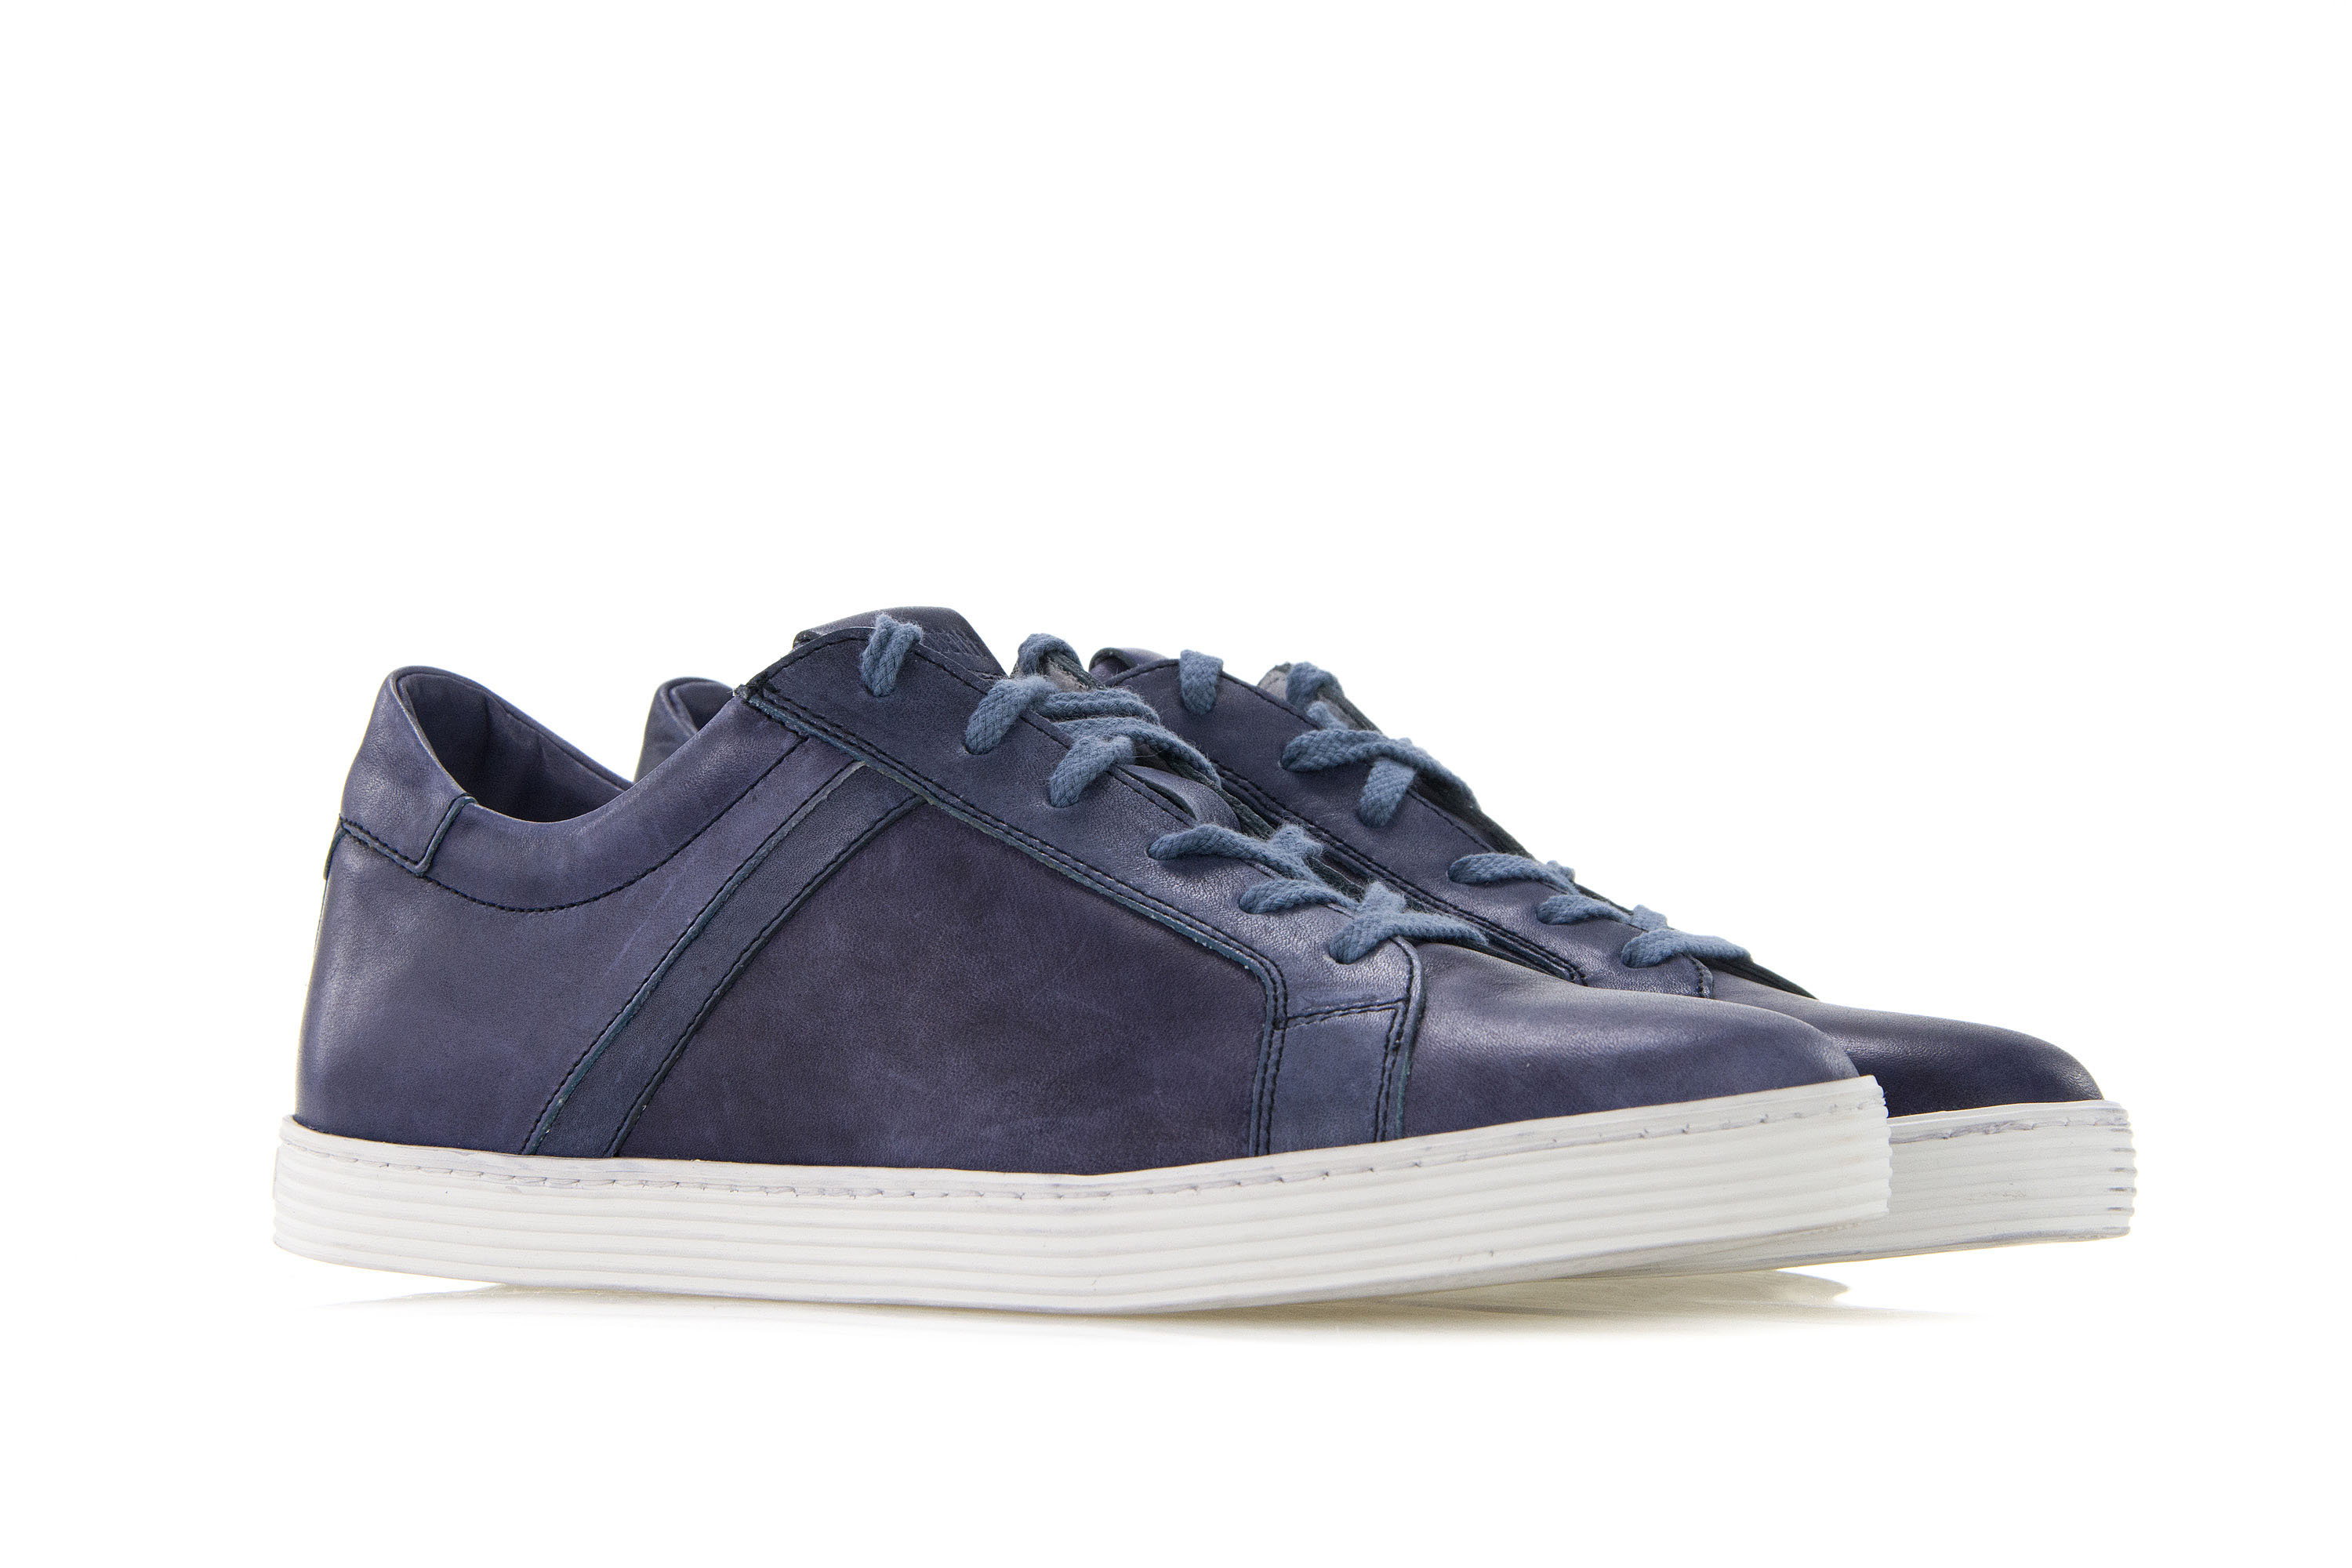 Details about BIKKEMBERGS Mens Sneakers Shoes WORDS 892 LOW SHOE Blue Vintage Leather